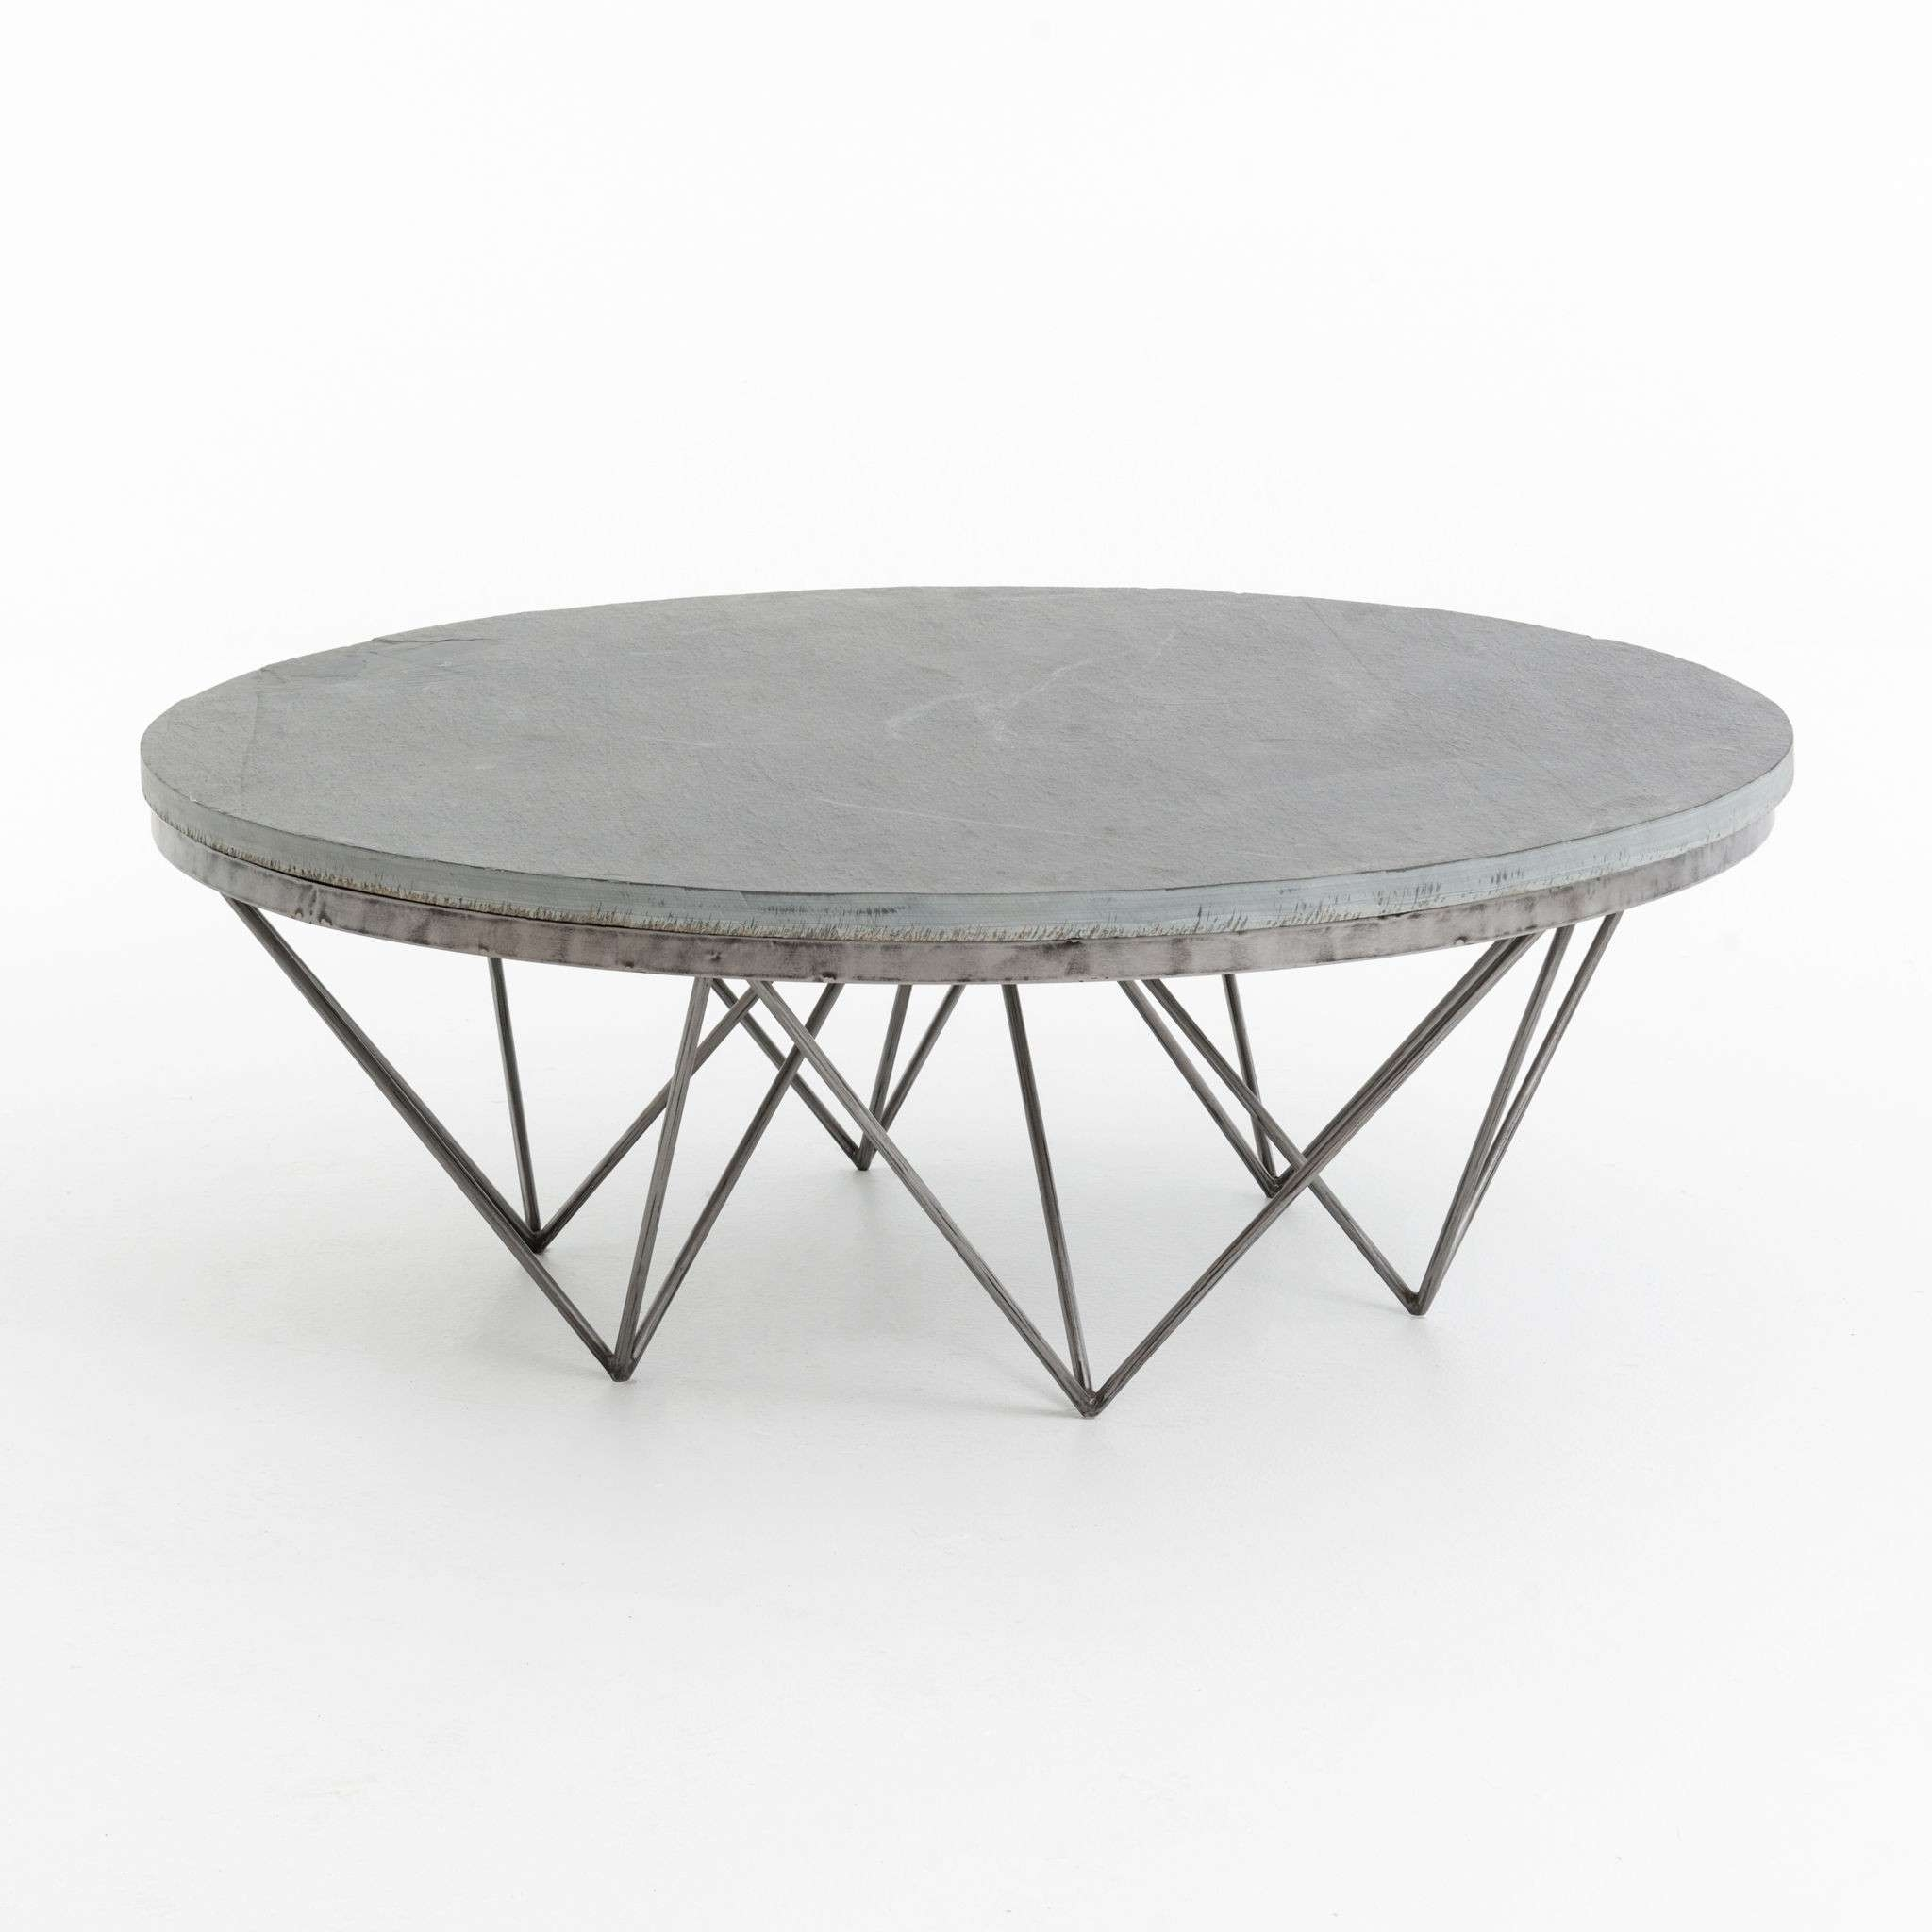 Most Popular Unique Glass Coffee Tables Throughout Coffee Tables : Remarkable Coffee Tables Design Iron Crossed (View 5 of 20)